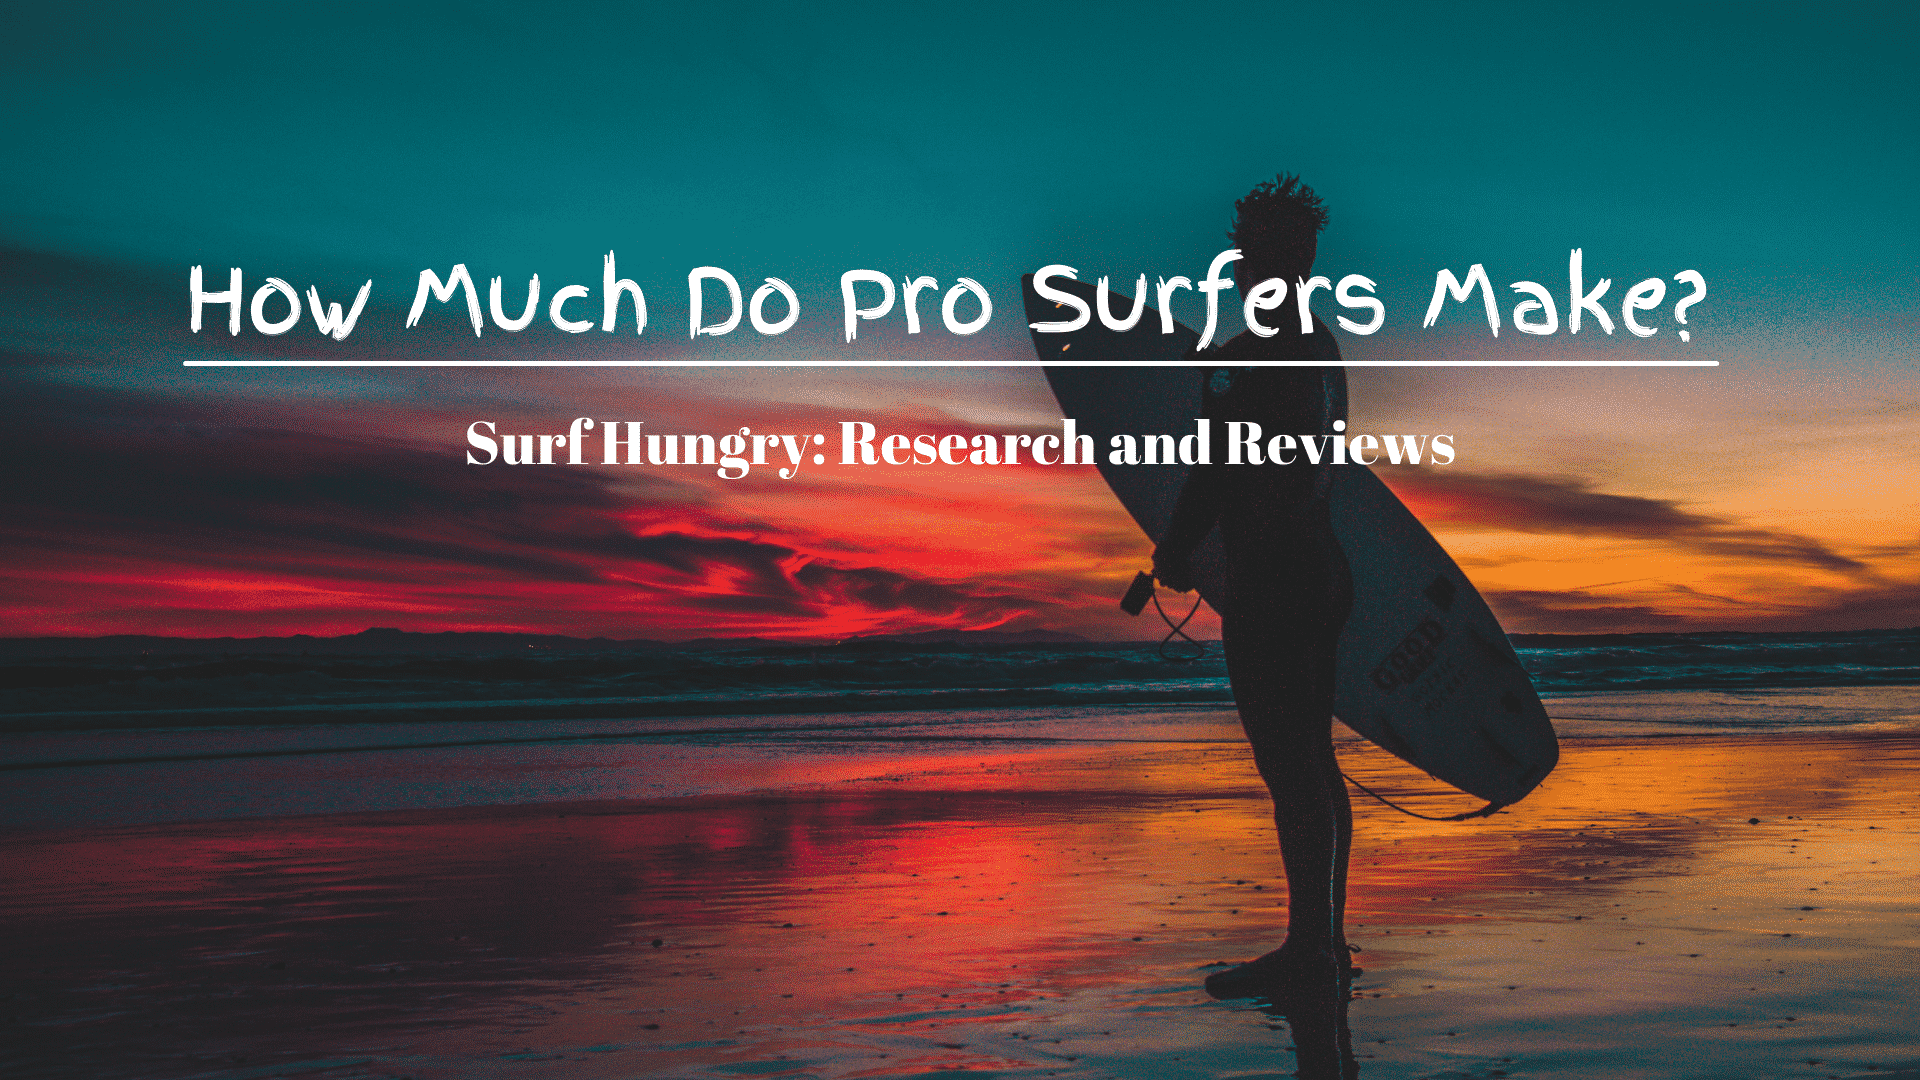 How Much Do Pro Surfers Make?